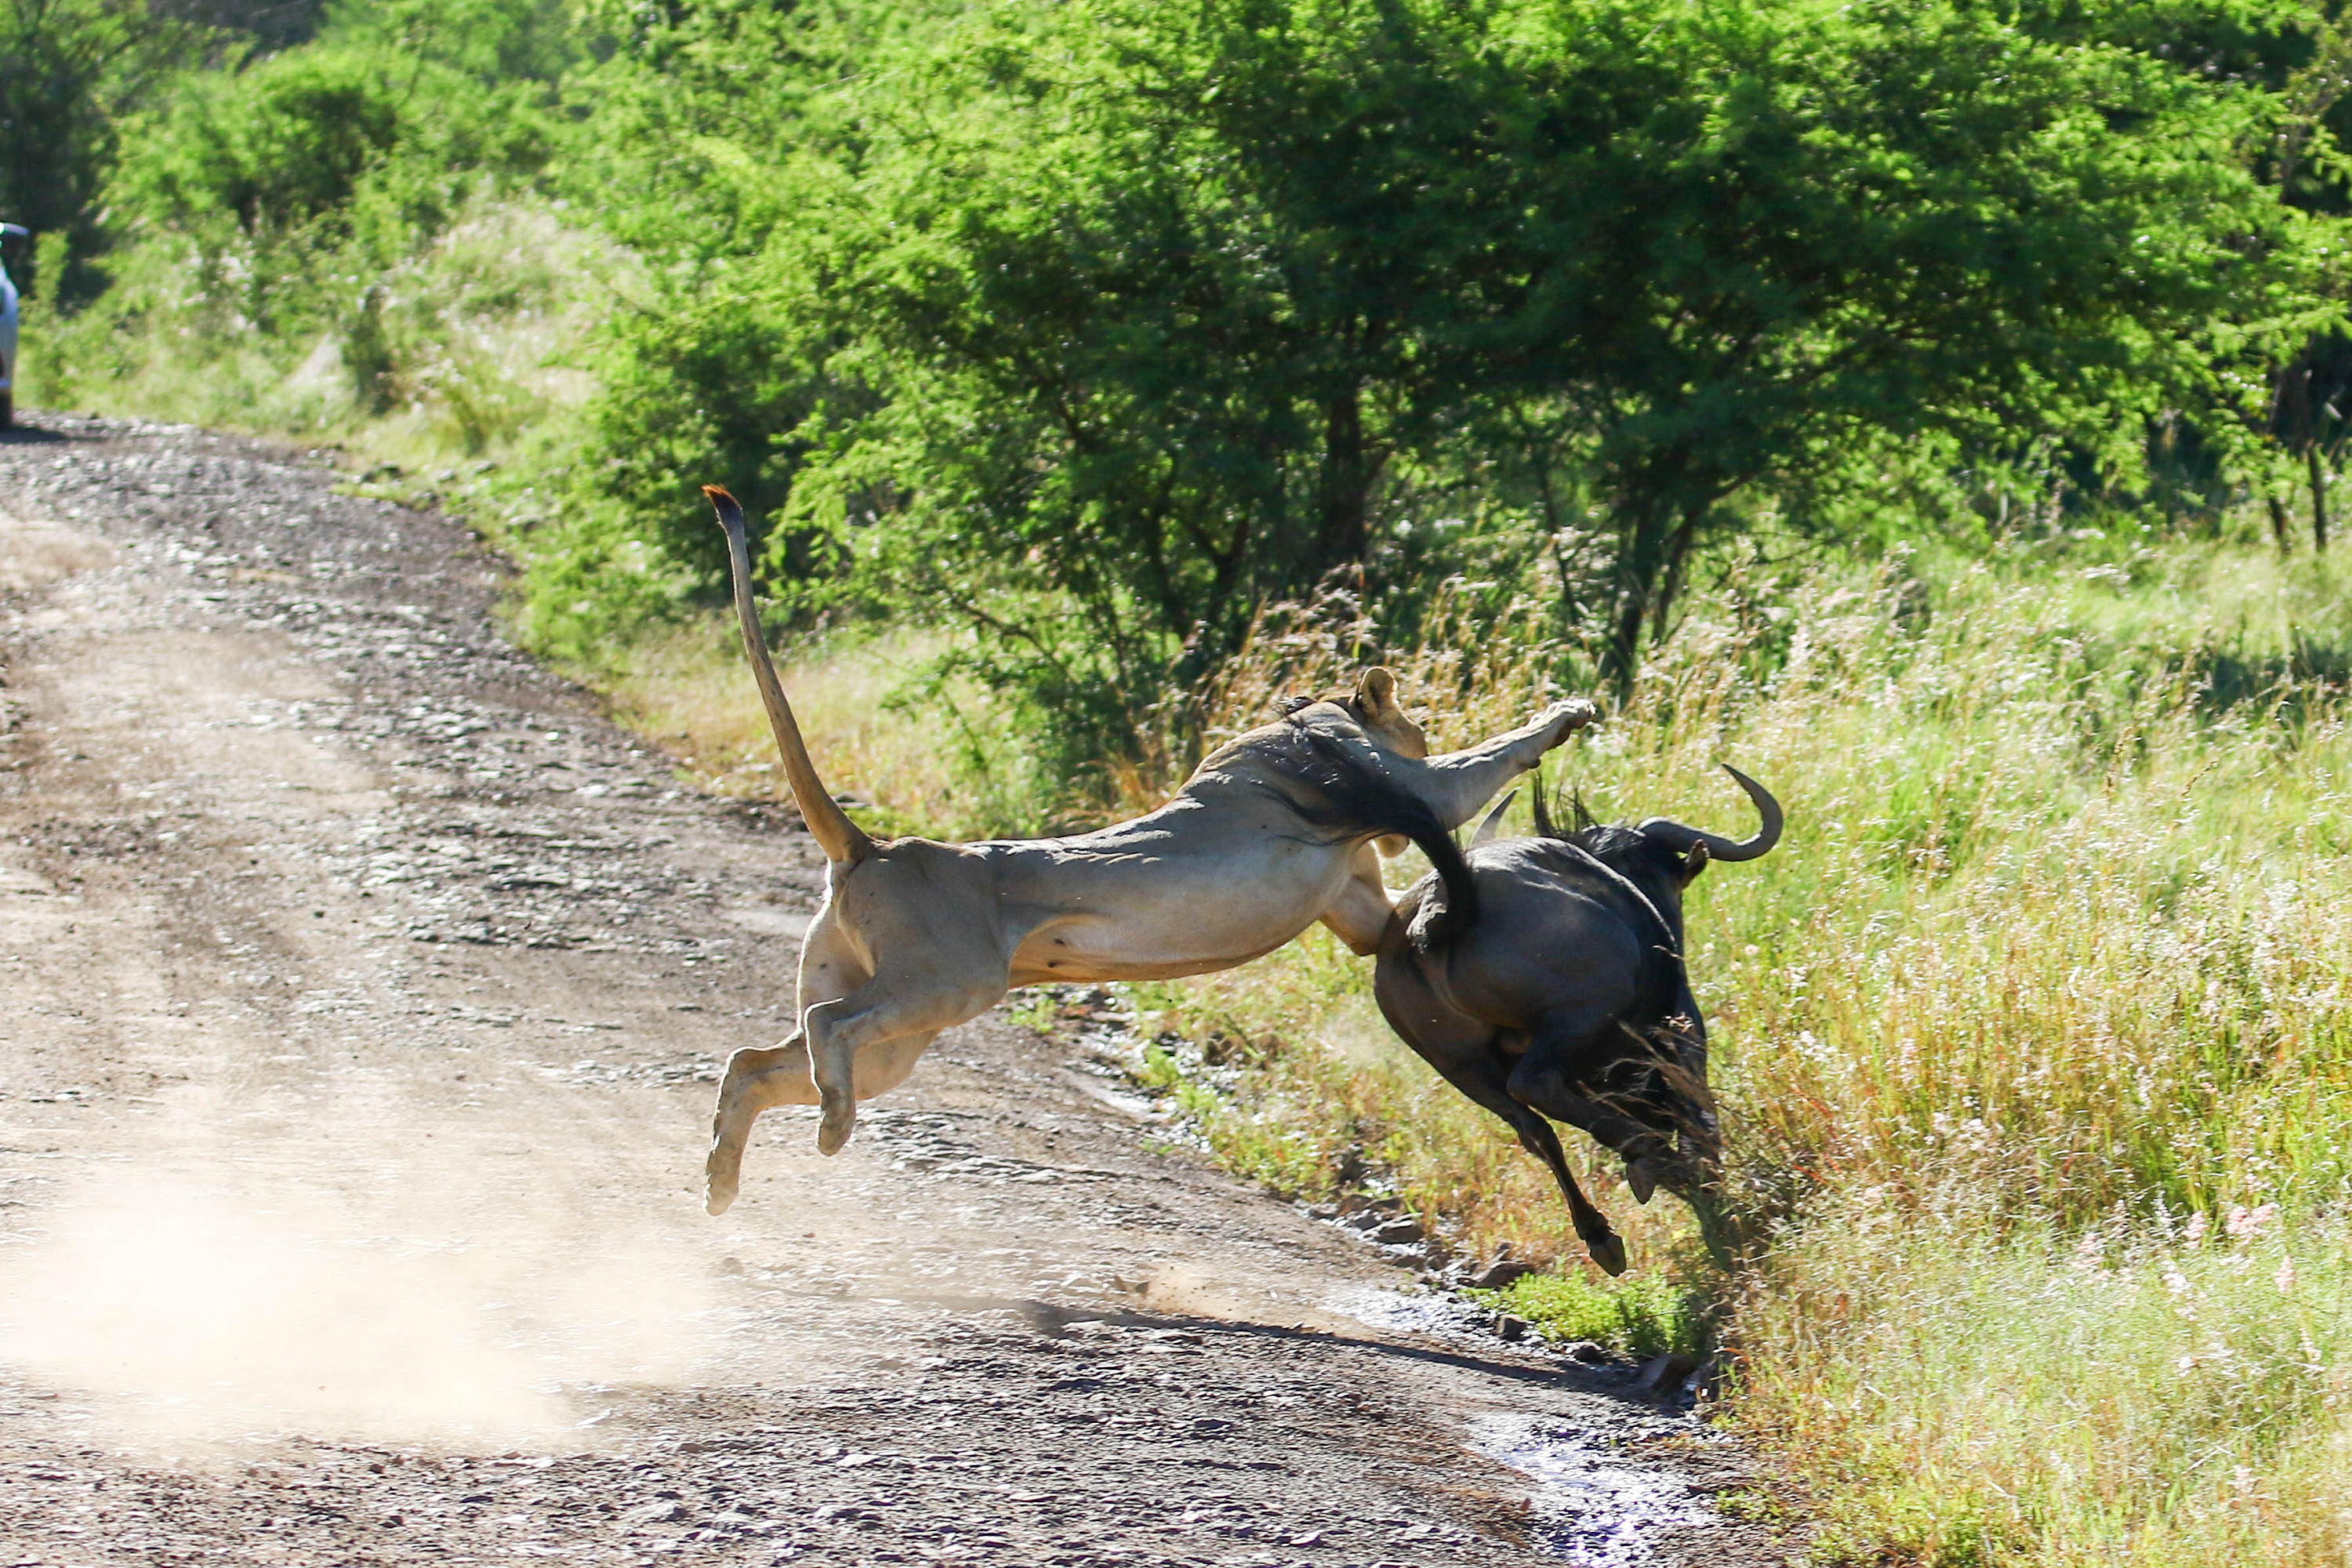 Lion hunting wildebeest - frame 4 (Photo by Derek Ho)